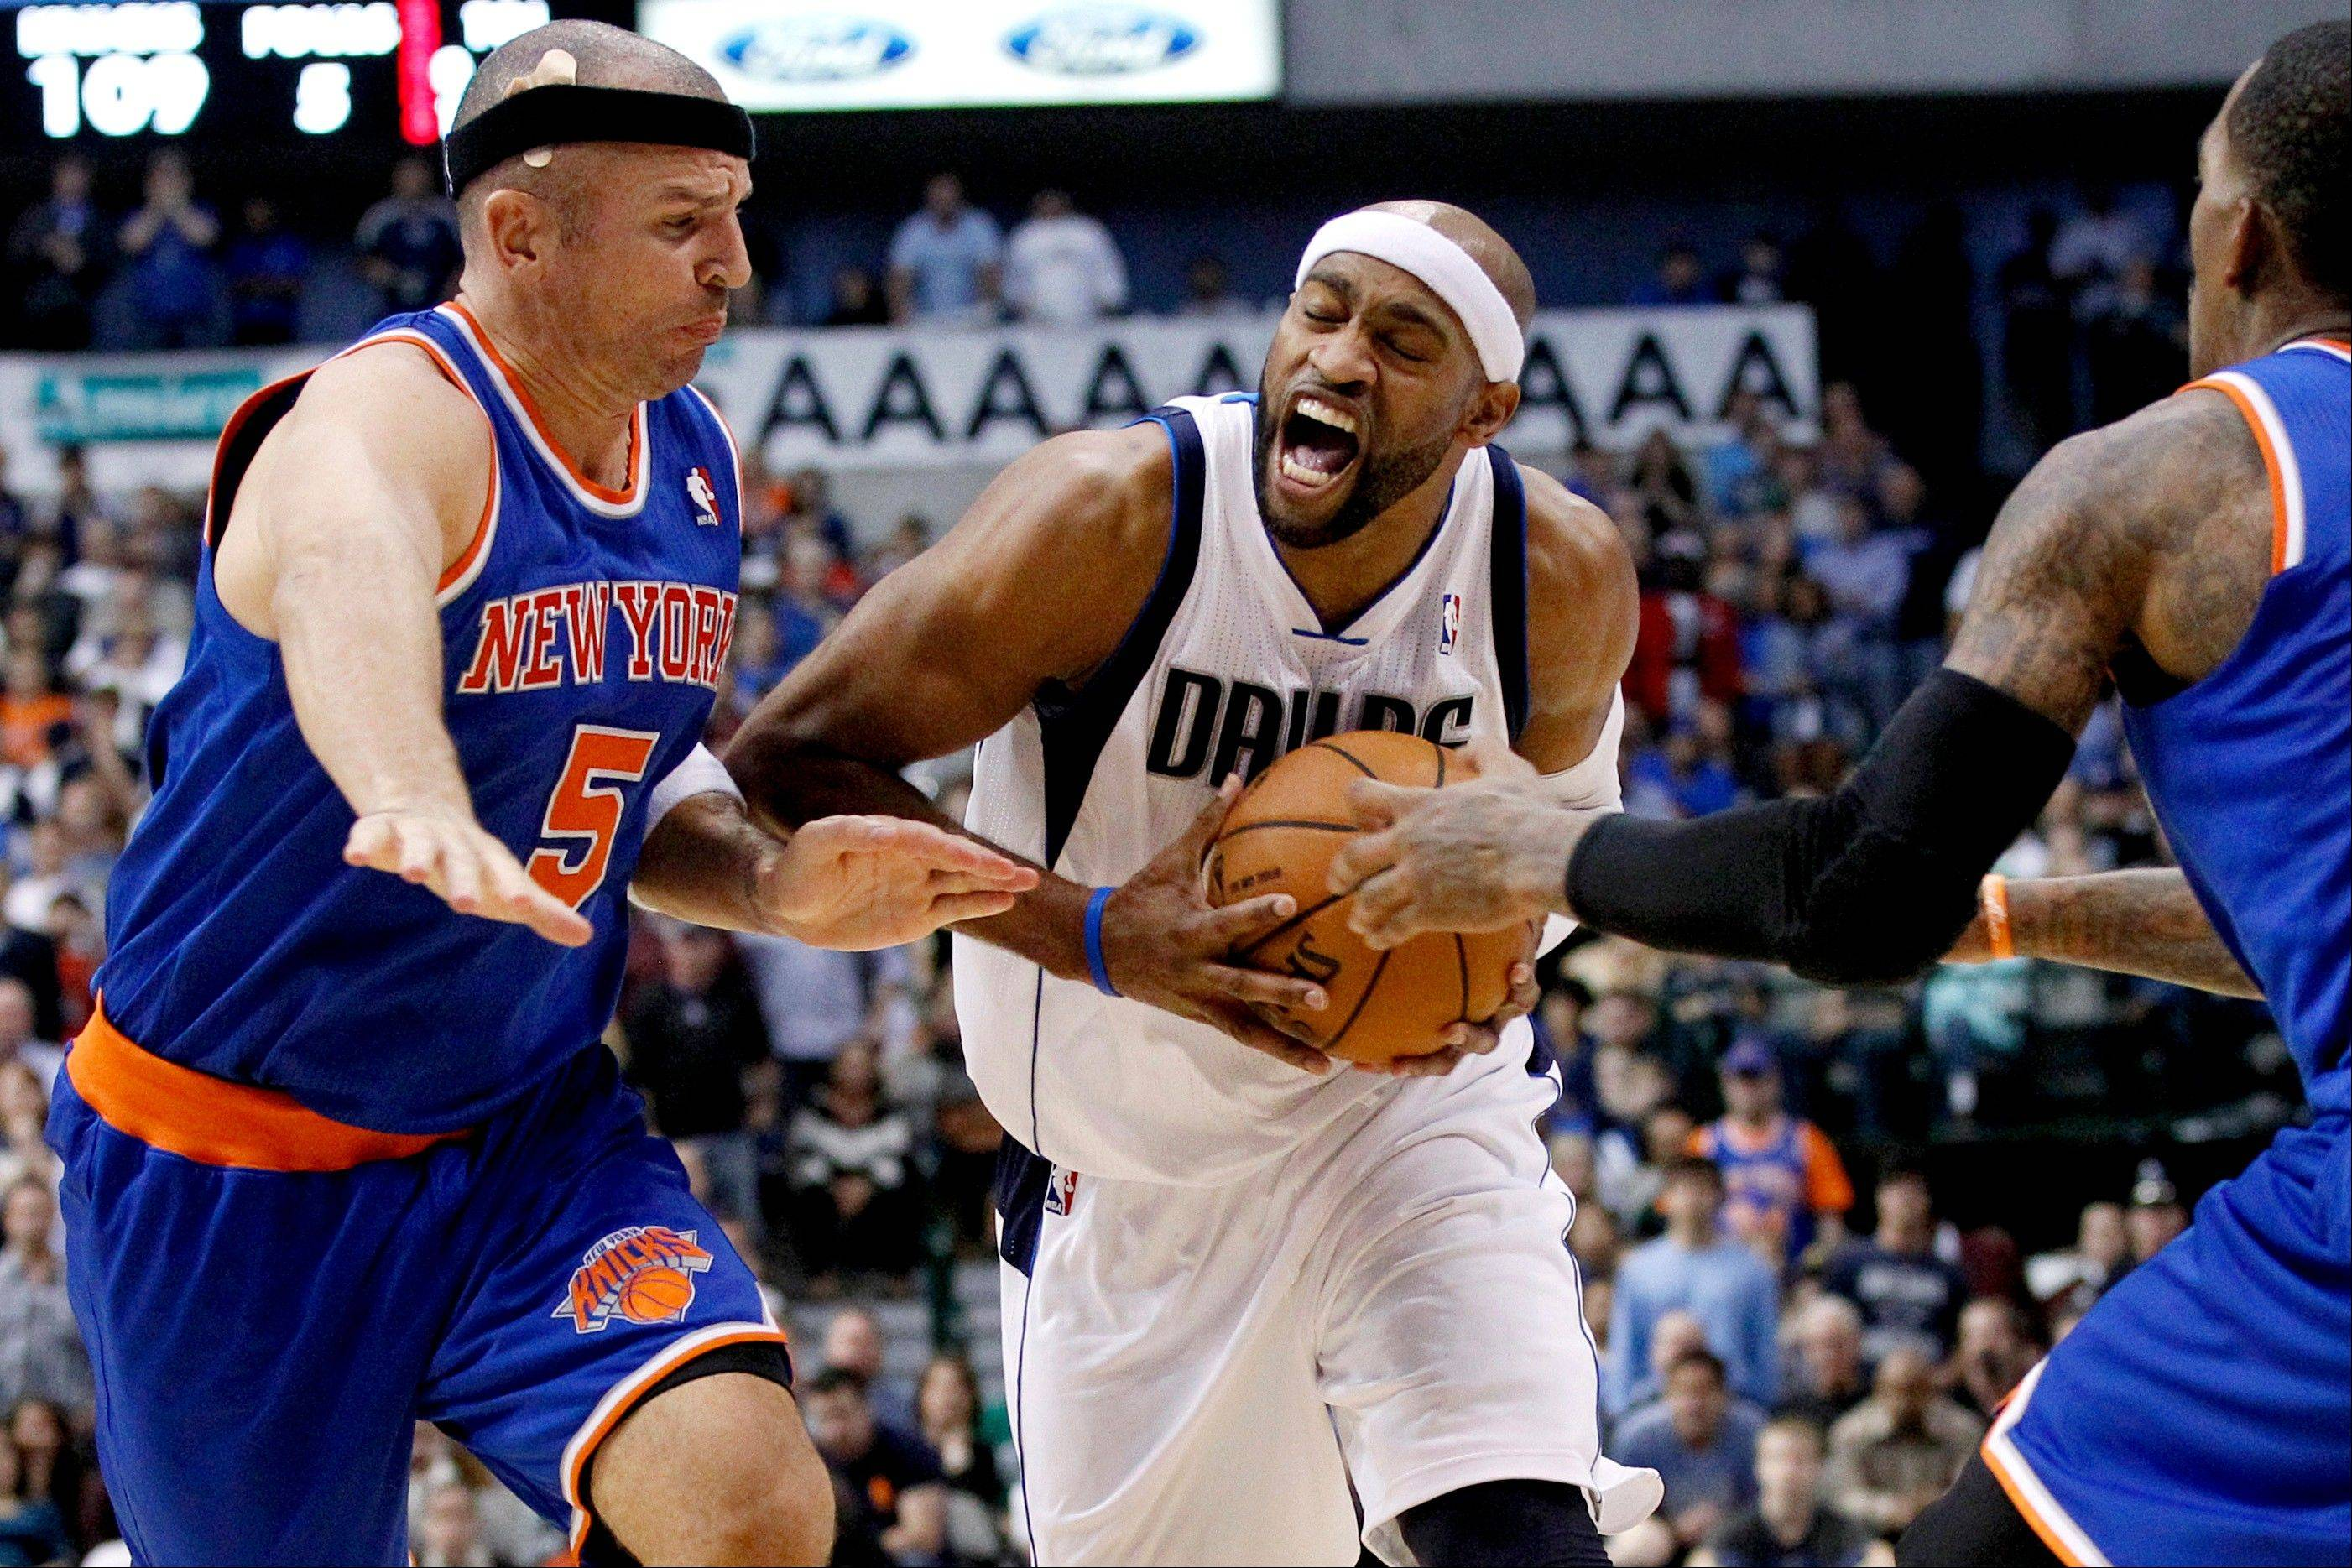 Mavericks escape with 114-111 win over Knicks